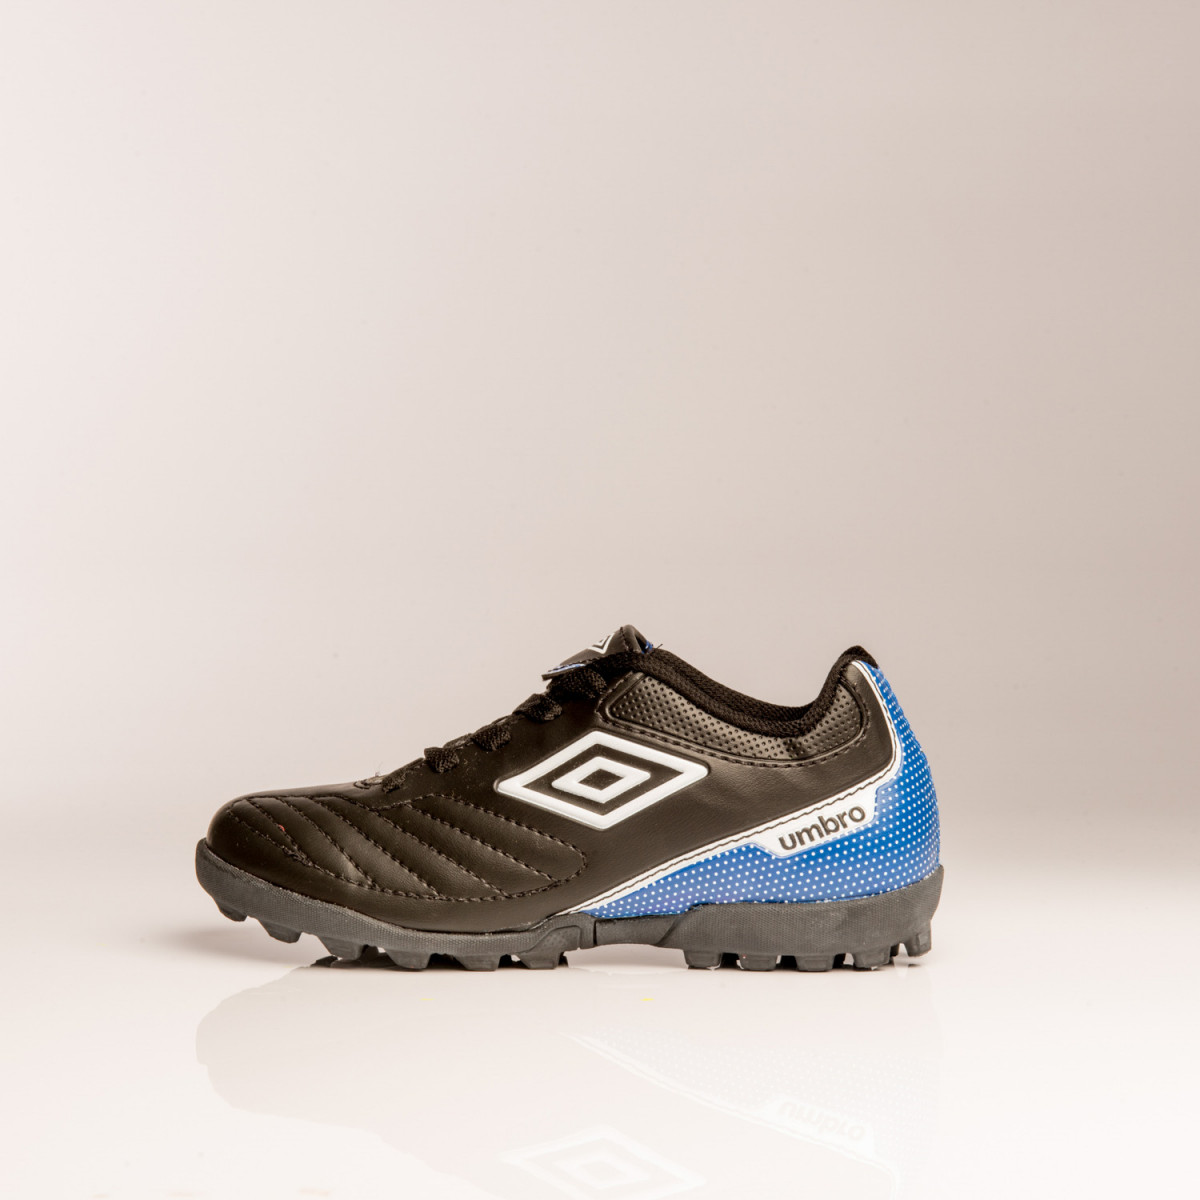 BOTINES UMBRO  ATTAK 2013 JR